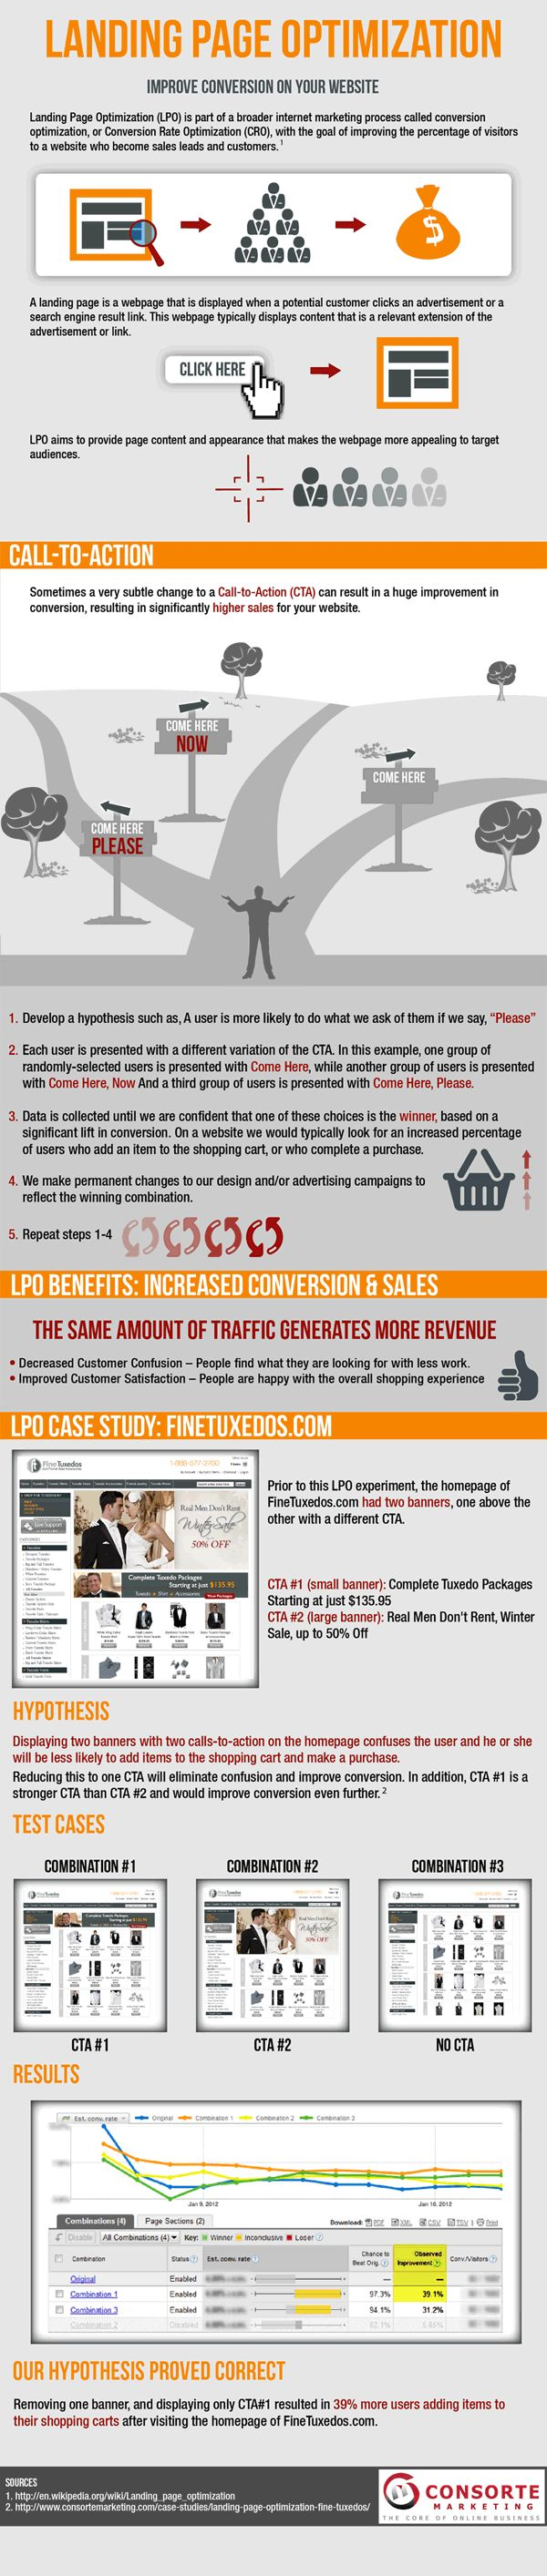 Landing Page Optimization #infographic